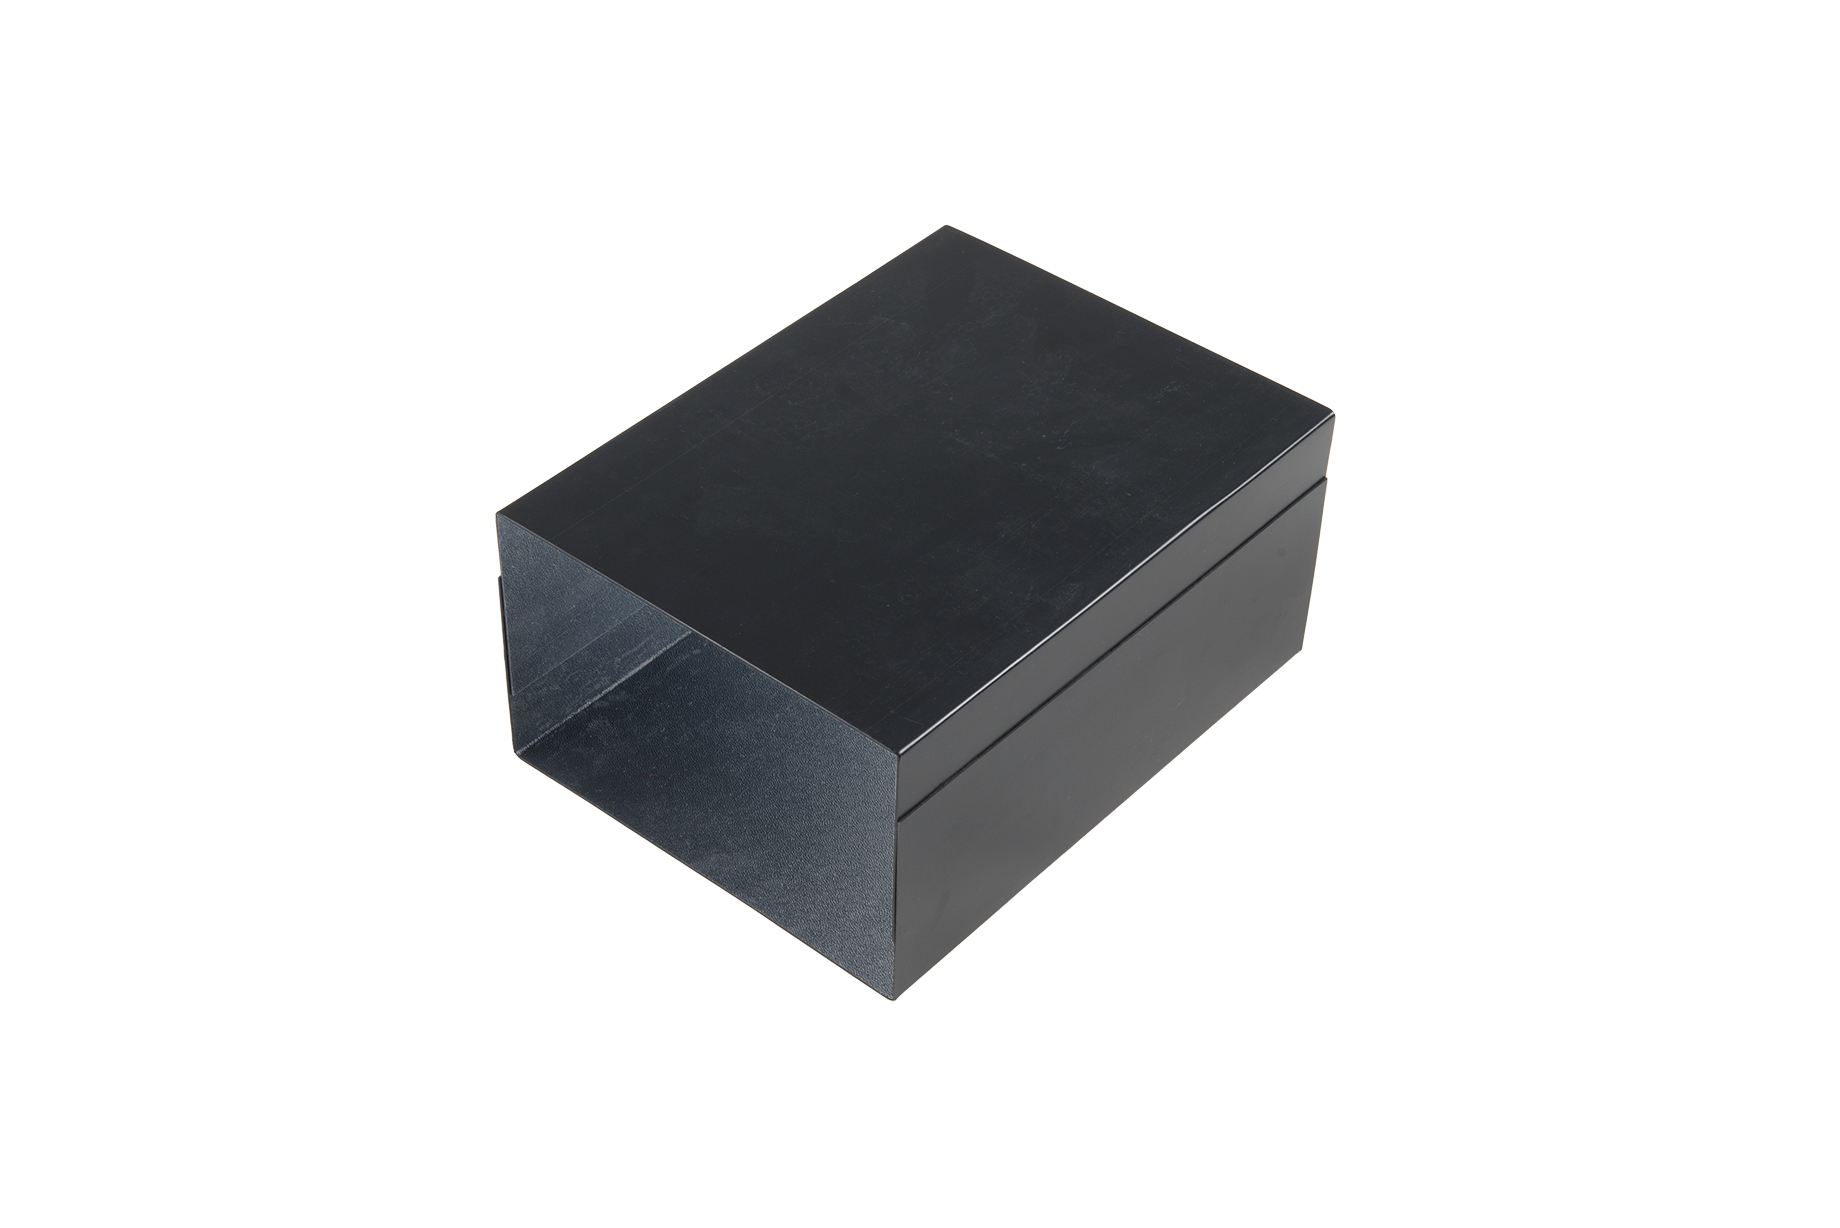 Stand alone photo of the double airbrick vent sleeve